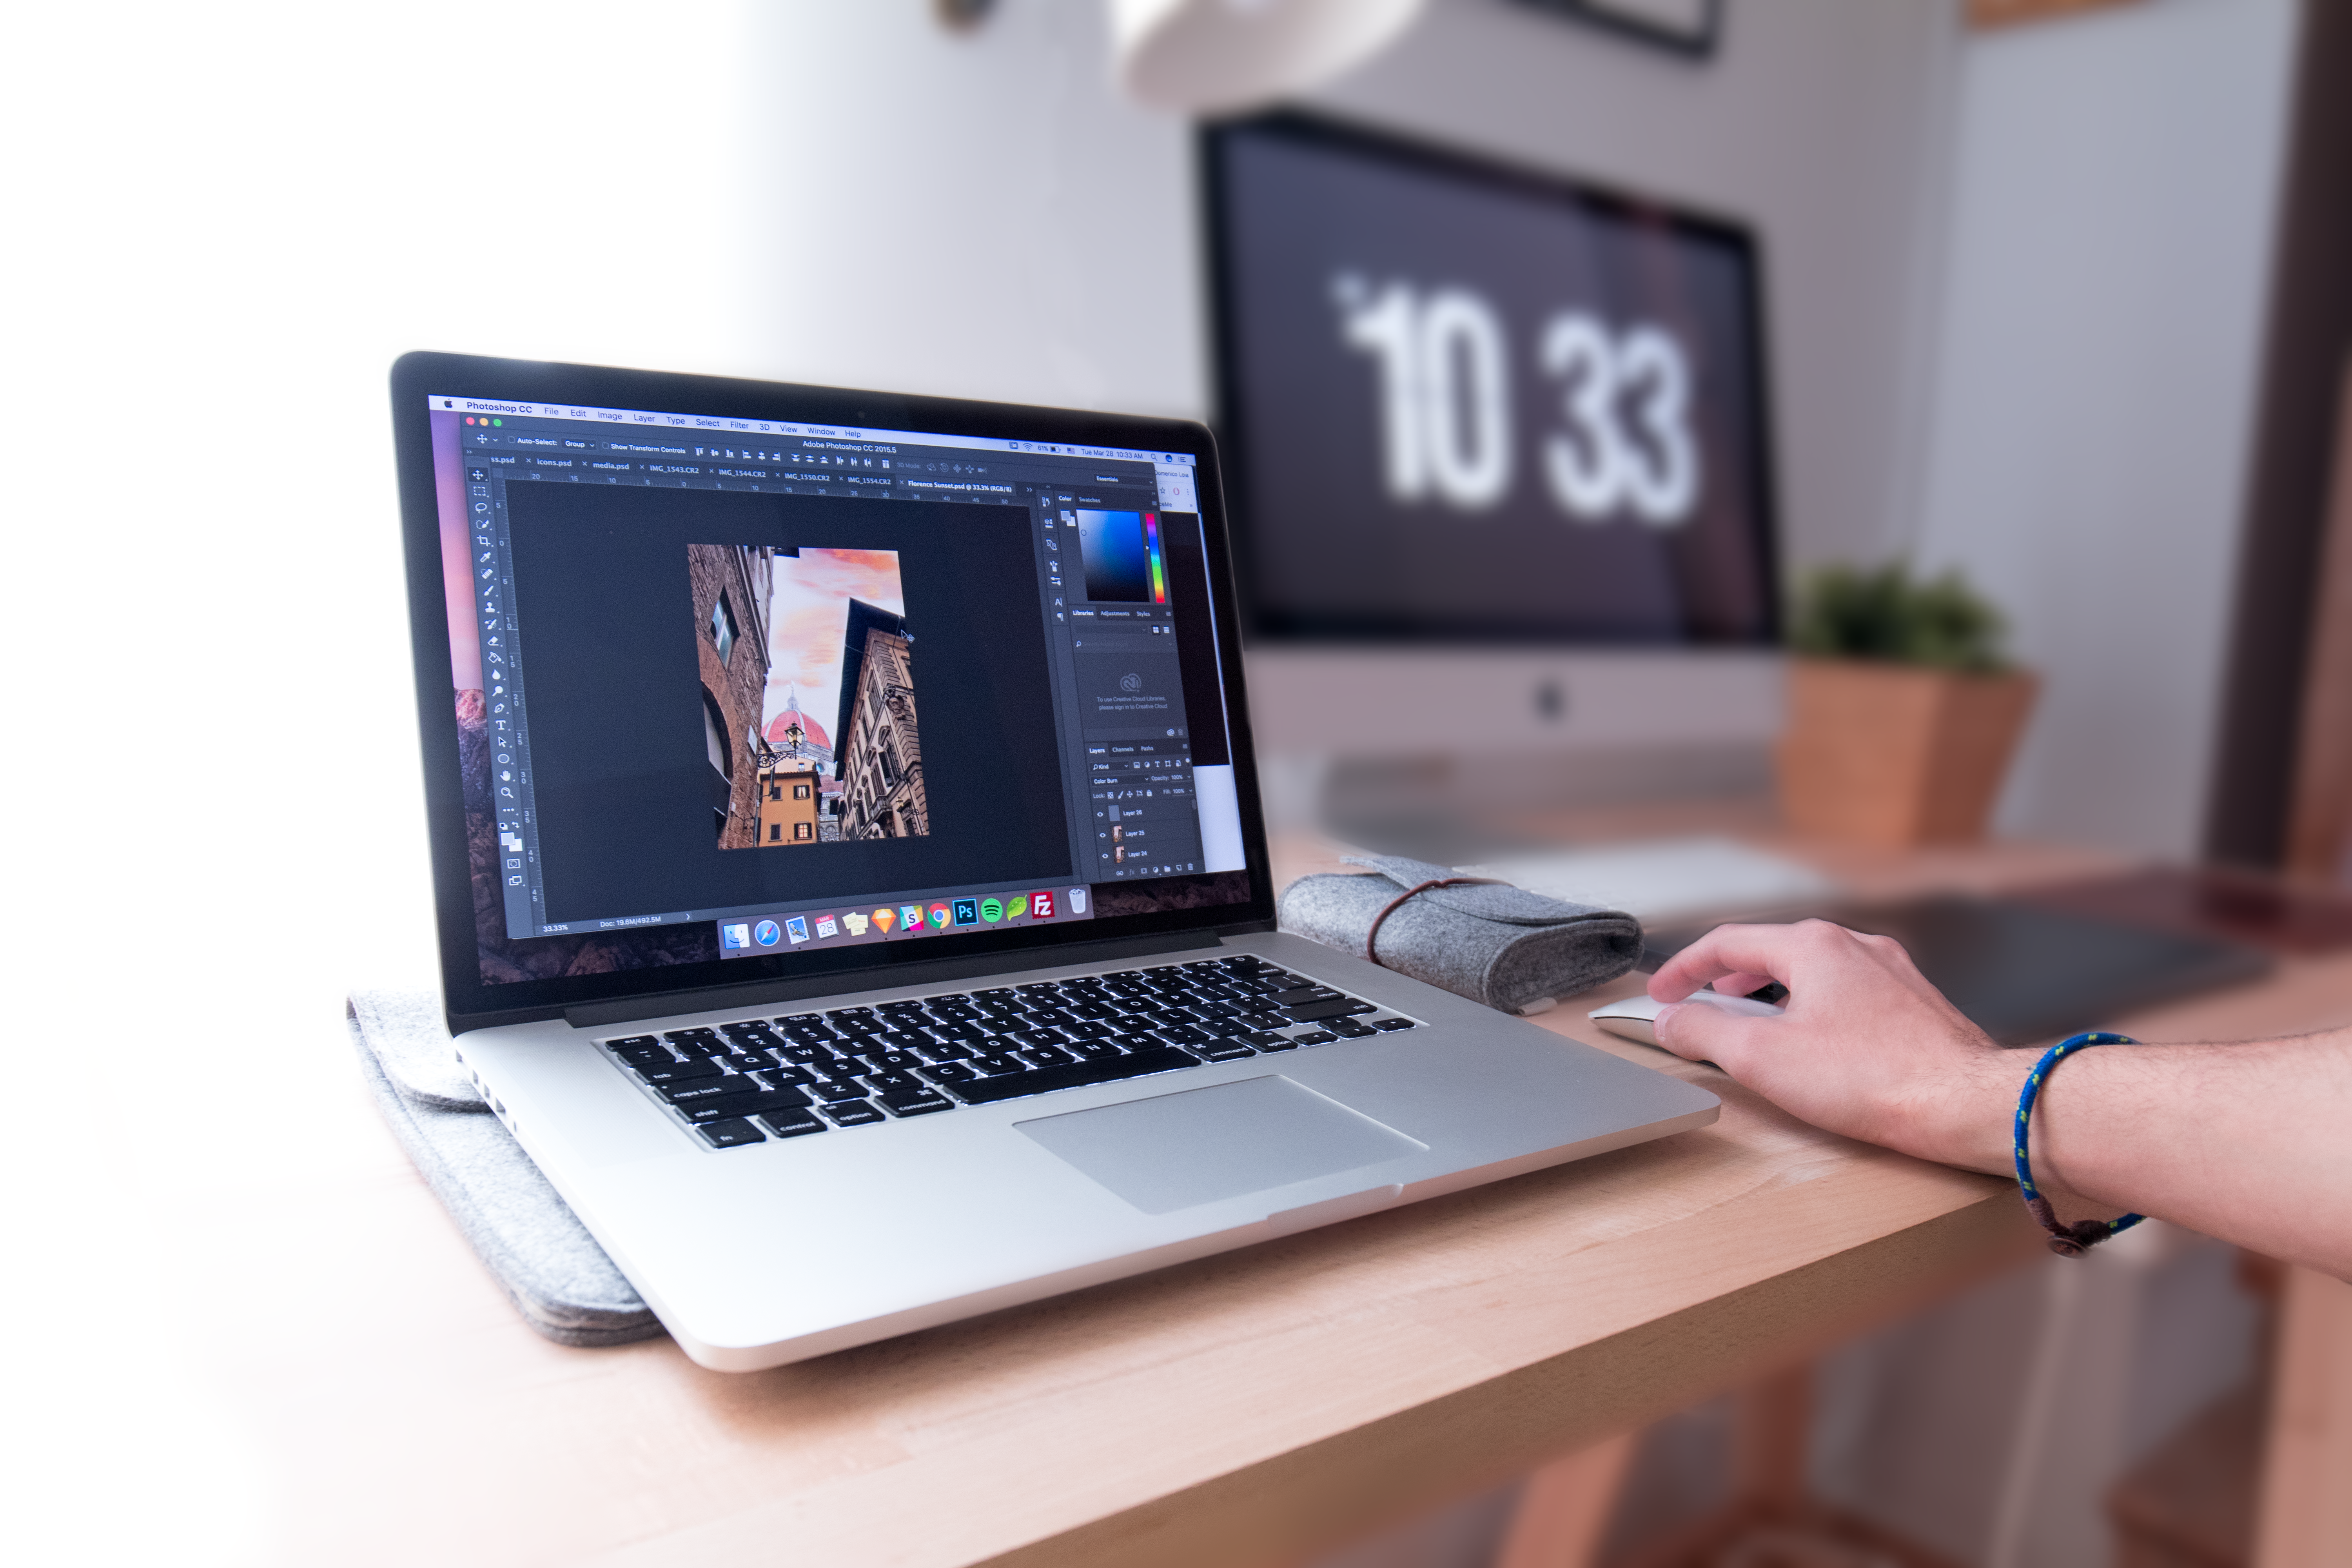 A silver Macbook laptop with Photoshop running sits on a wooden desk while a person's hand is using the mouse